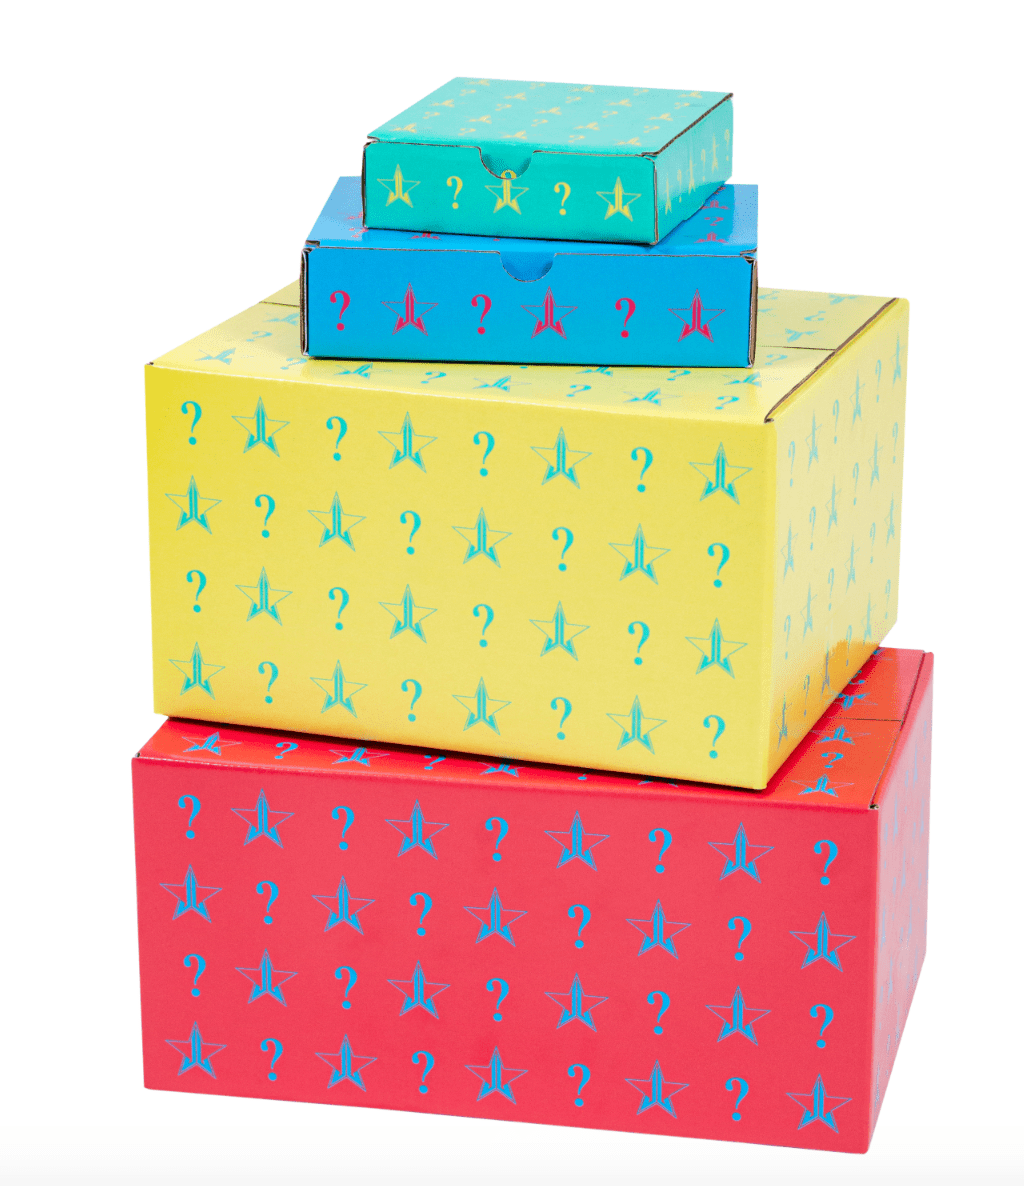 Jeffree Star Summer Mystery Boxes – On Sale Now